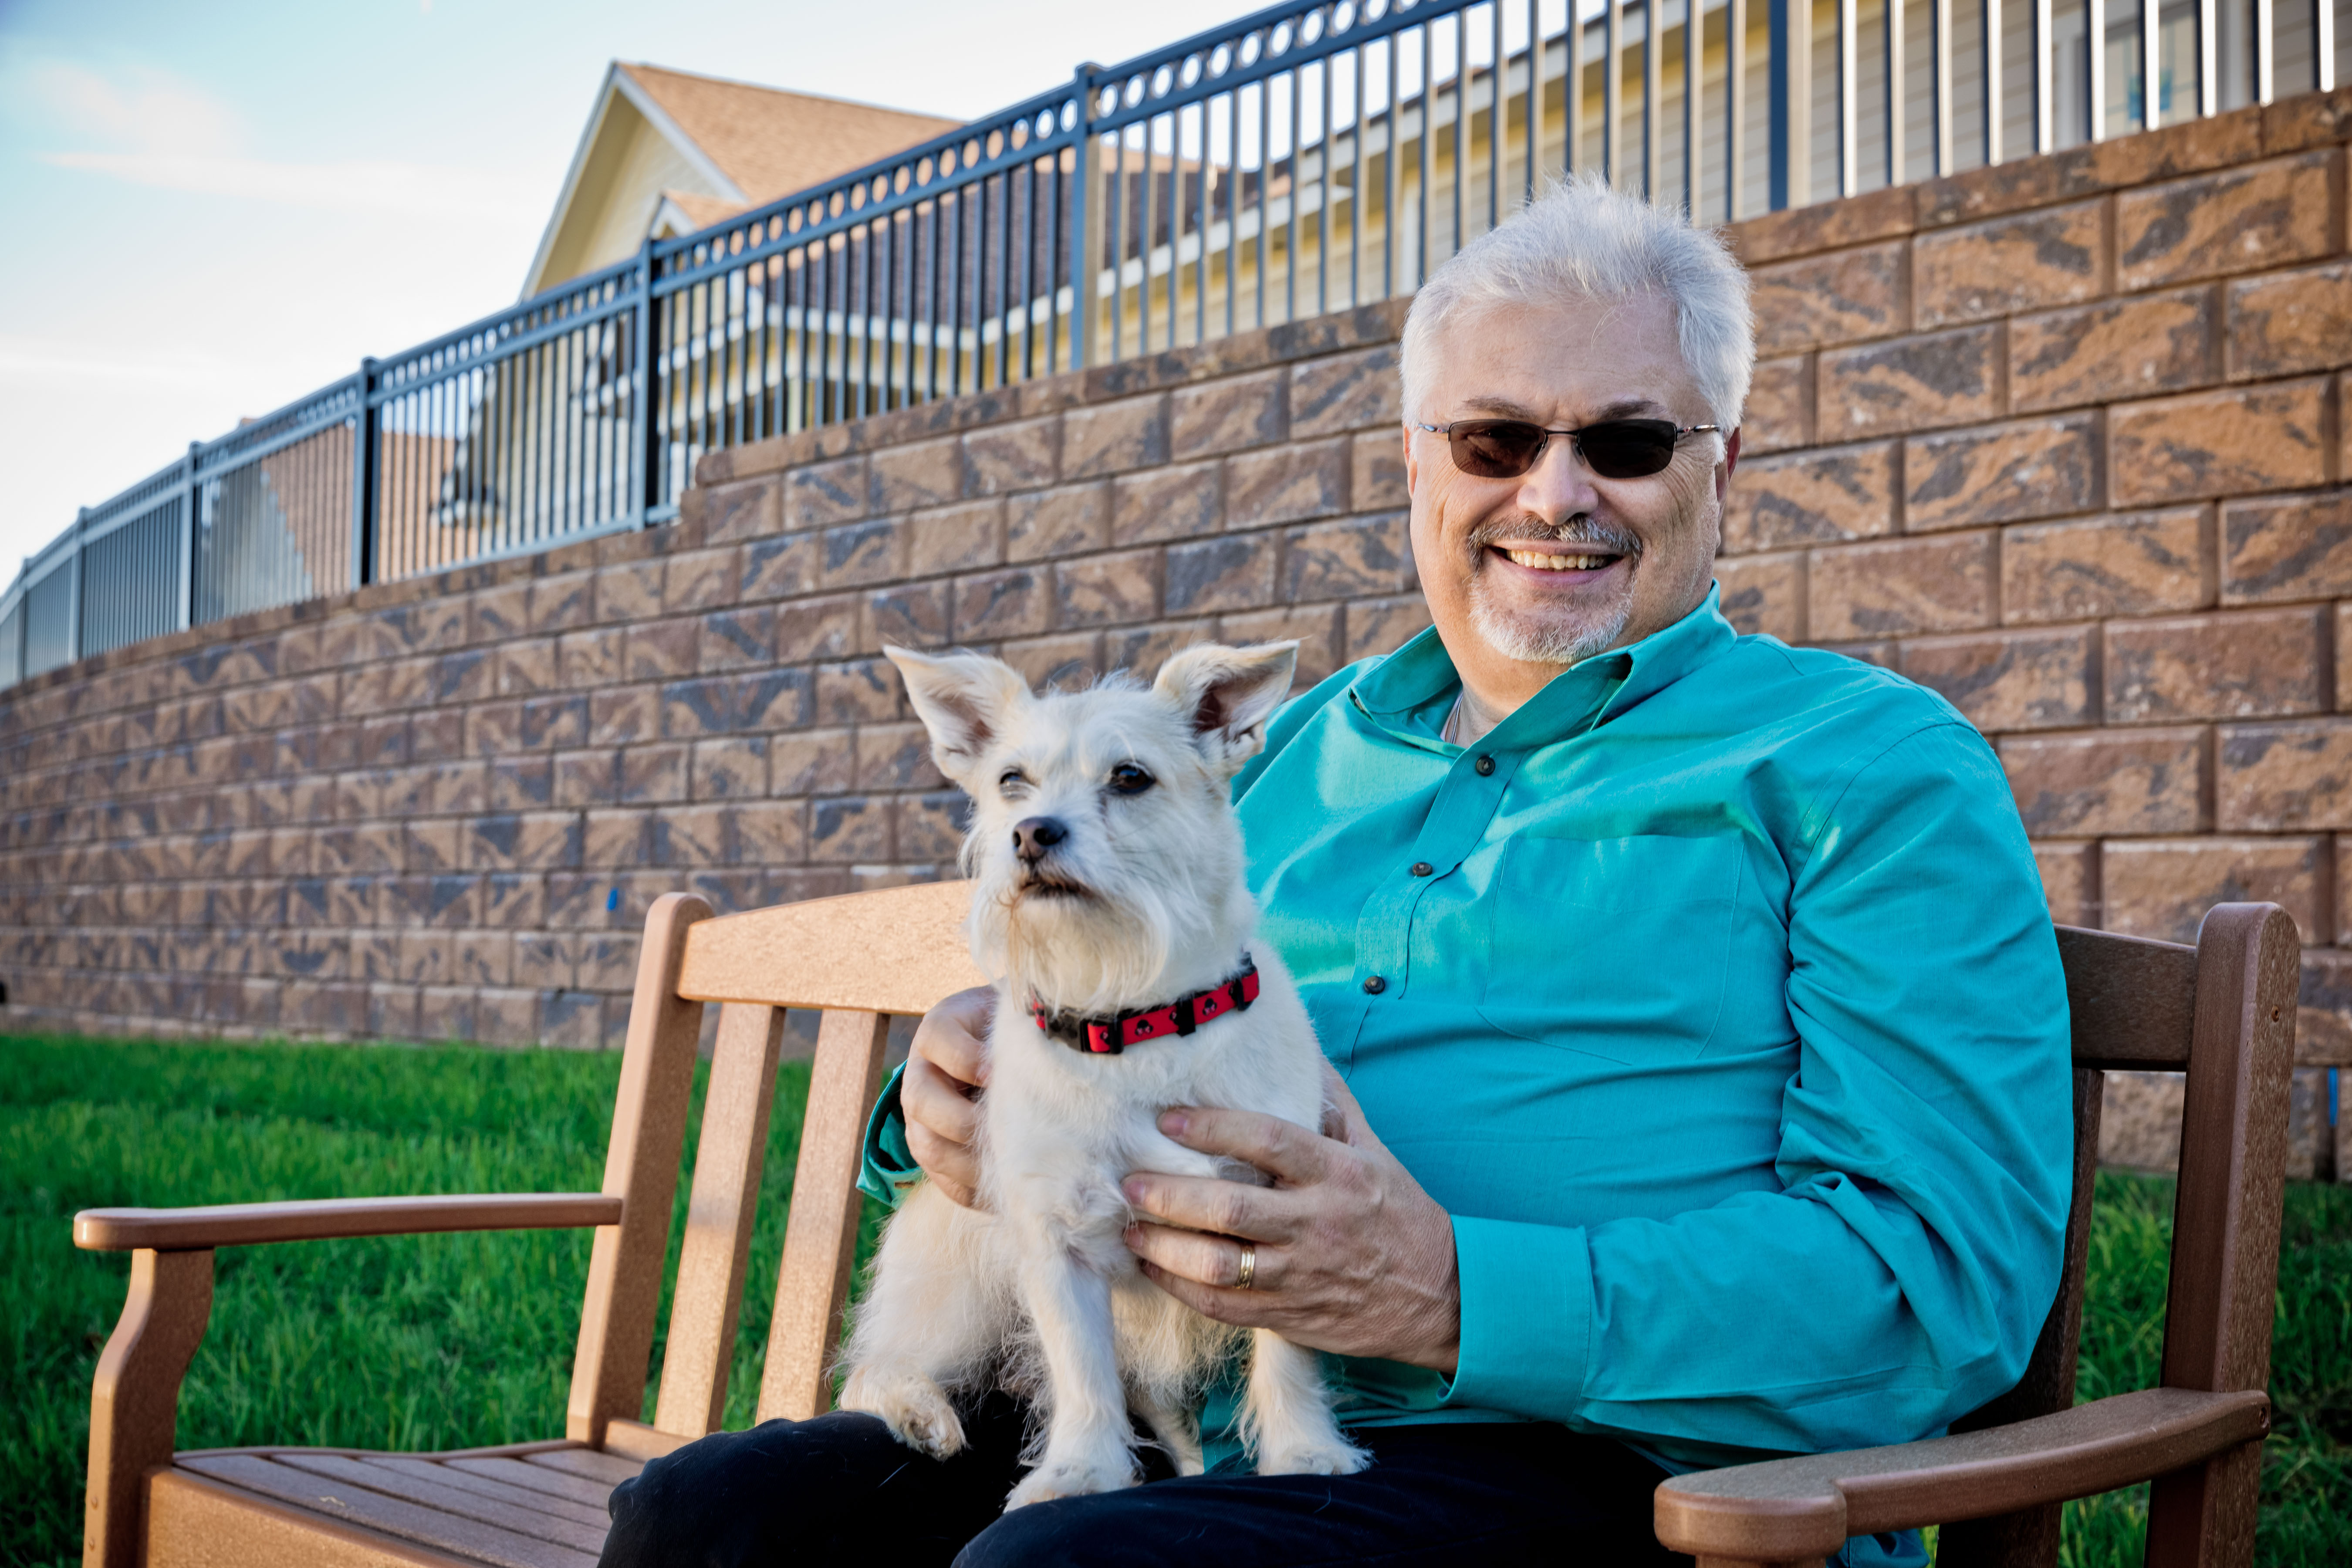 man sitting on bench with dog in his lap